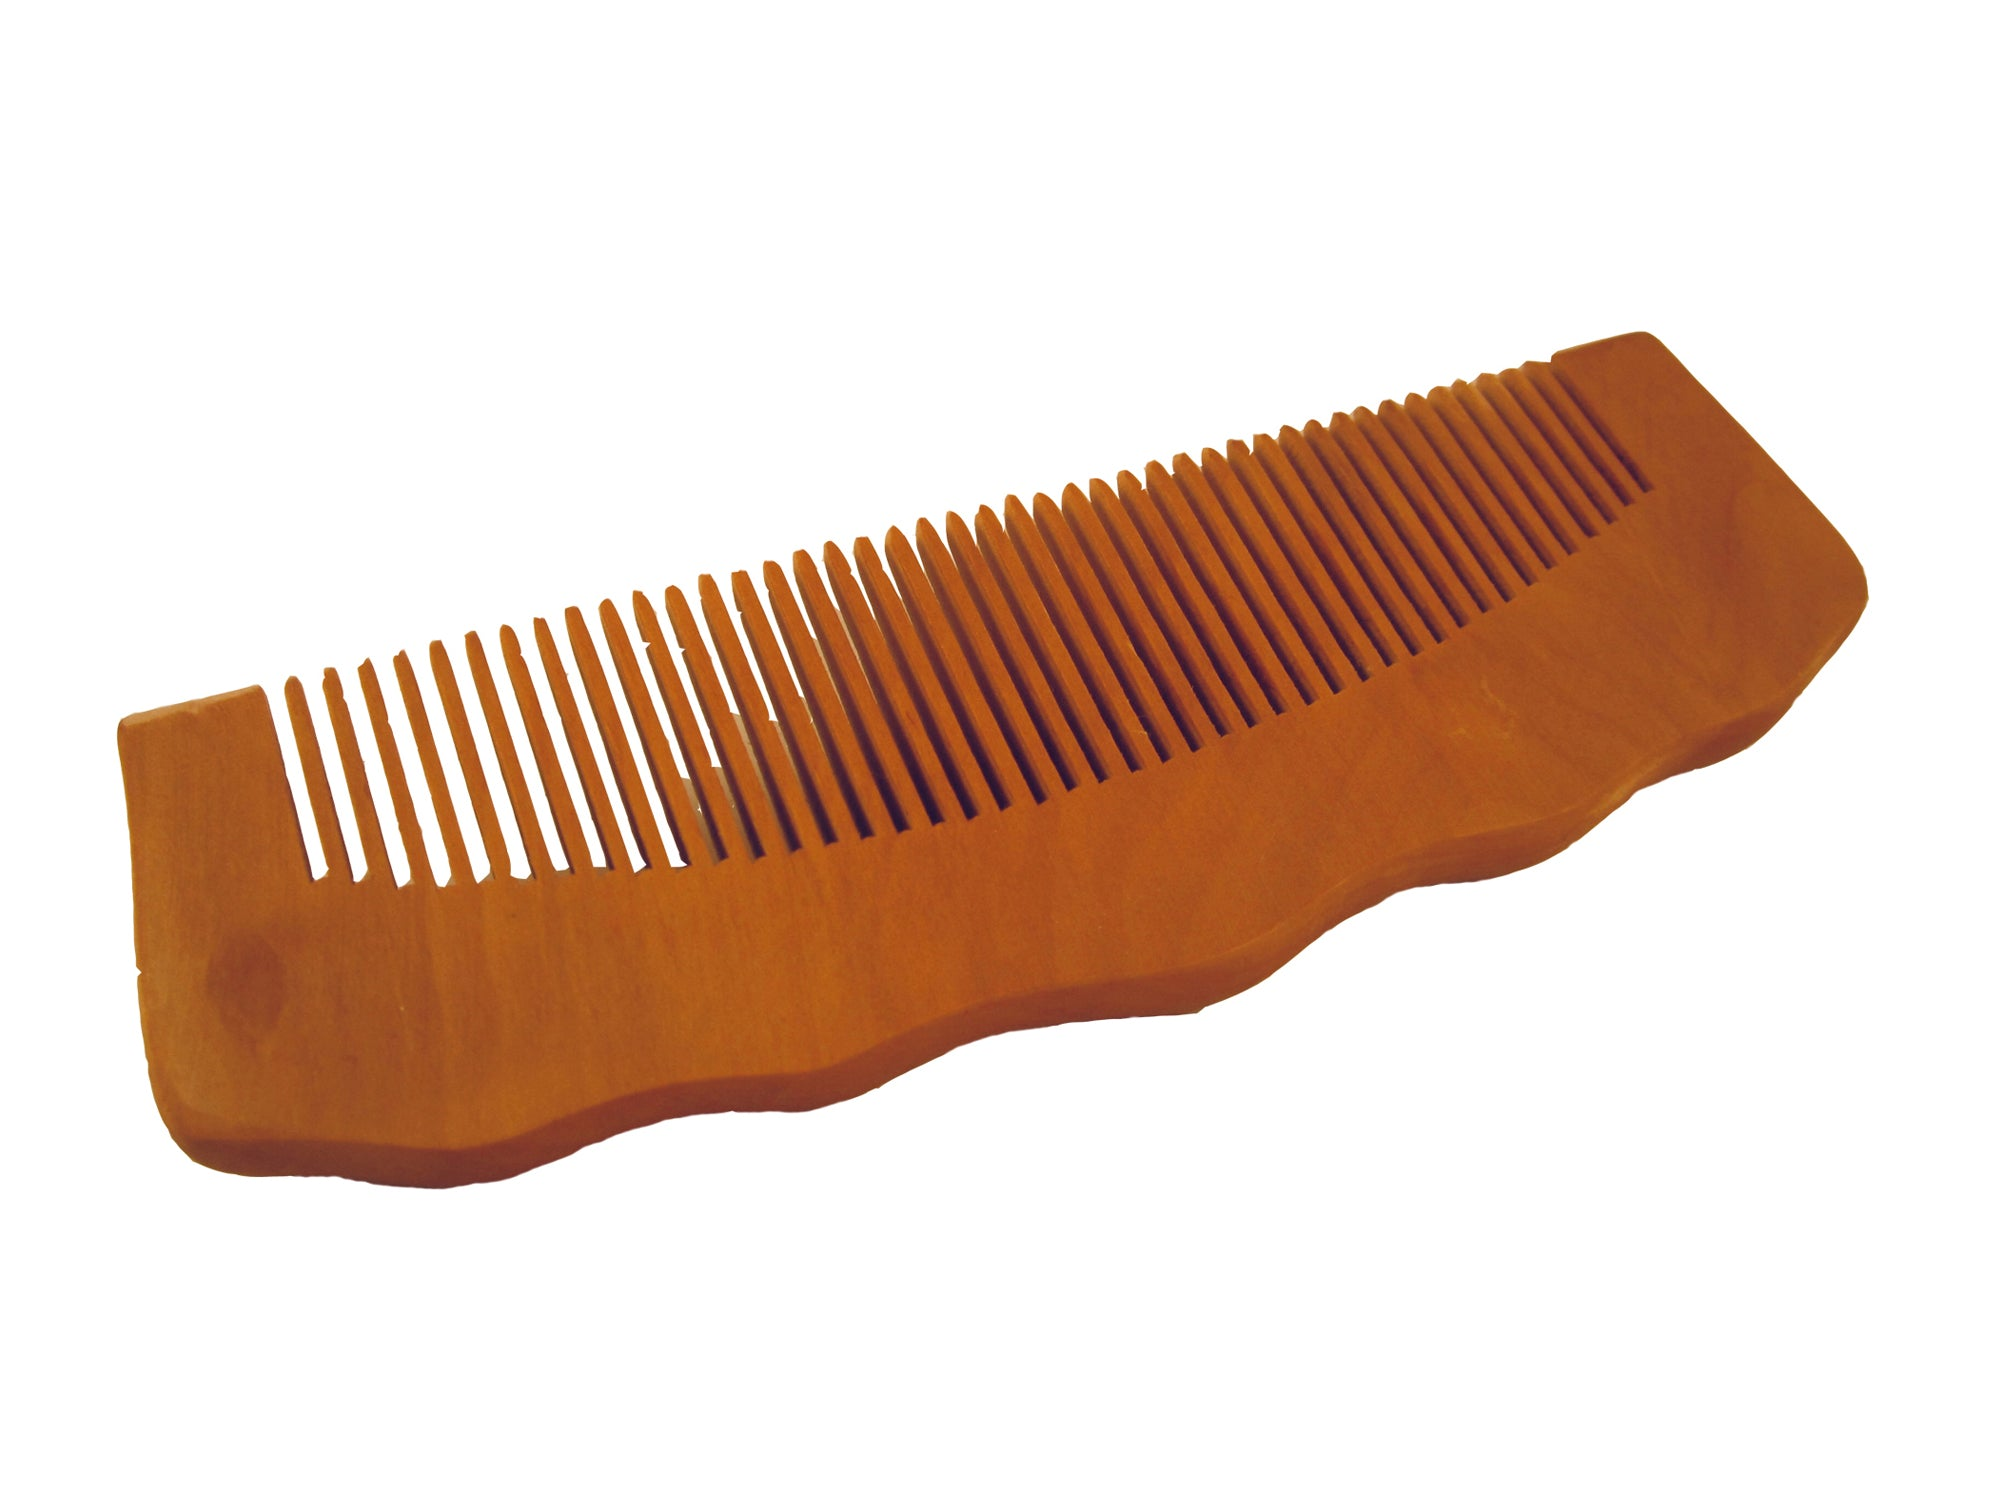 Wooden Comb, hair care, mustache care, men's women's care